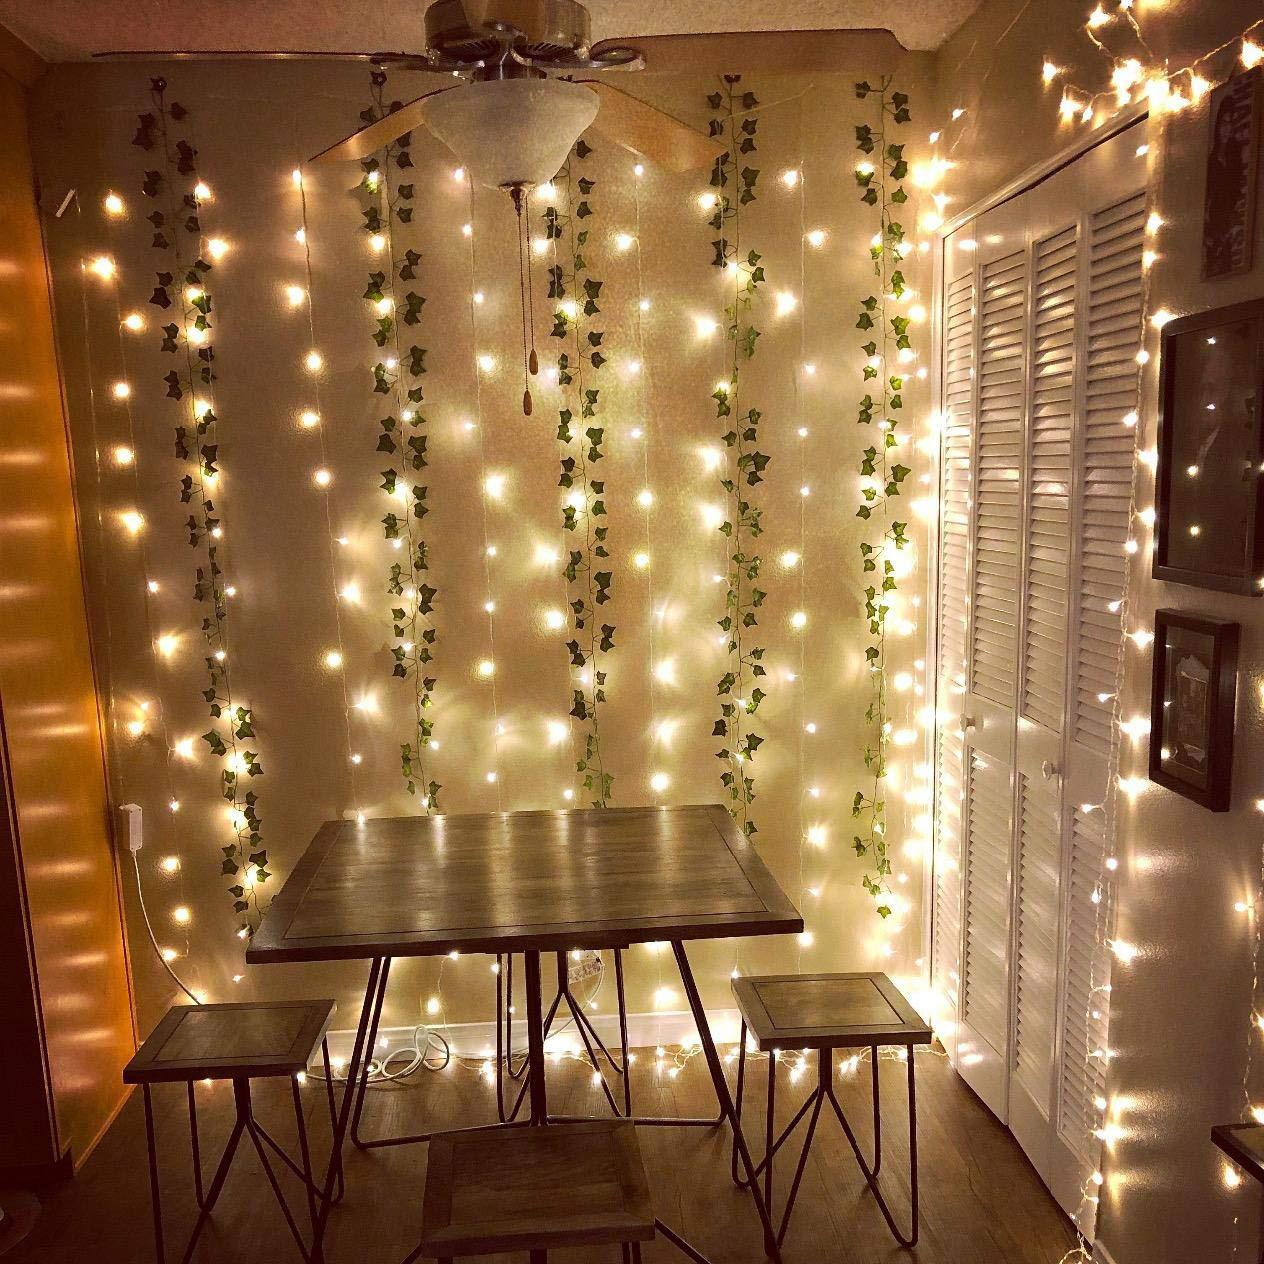 Led Window Curtains Lamp Room Decoration Amazon Lamp String 18w Low  Pressure Lamp String European General Purpose Party Christmas Lights  Christmas